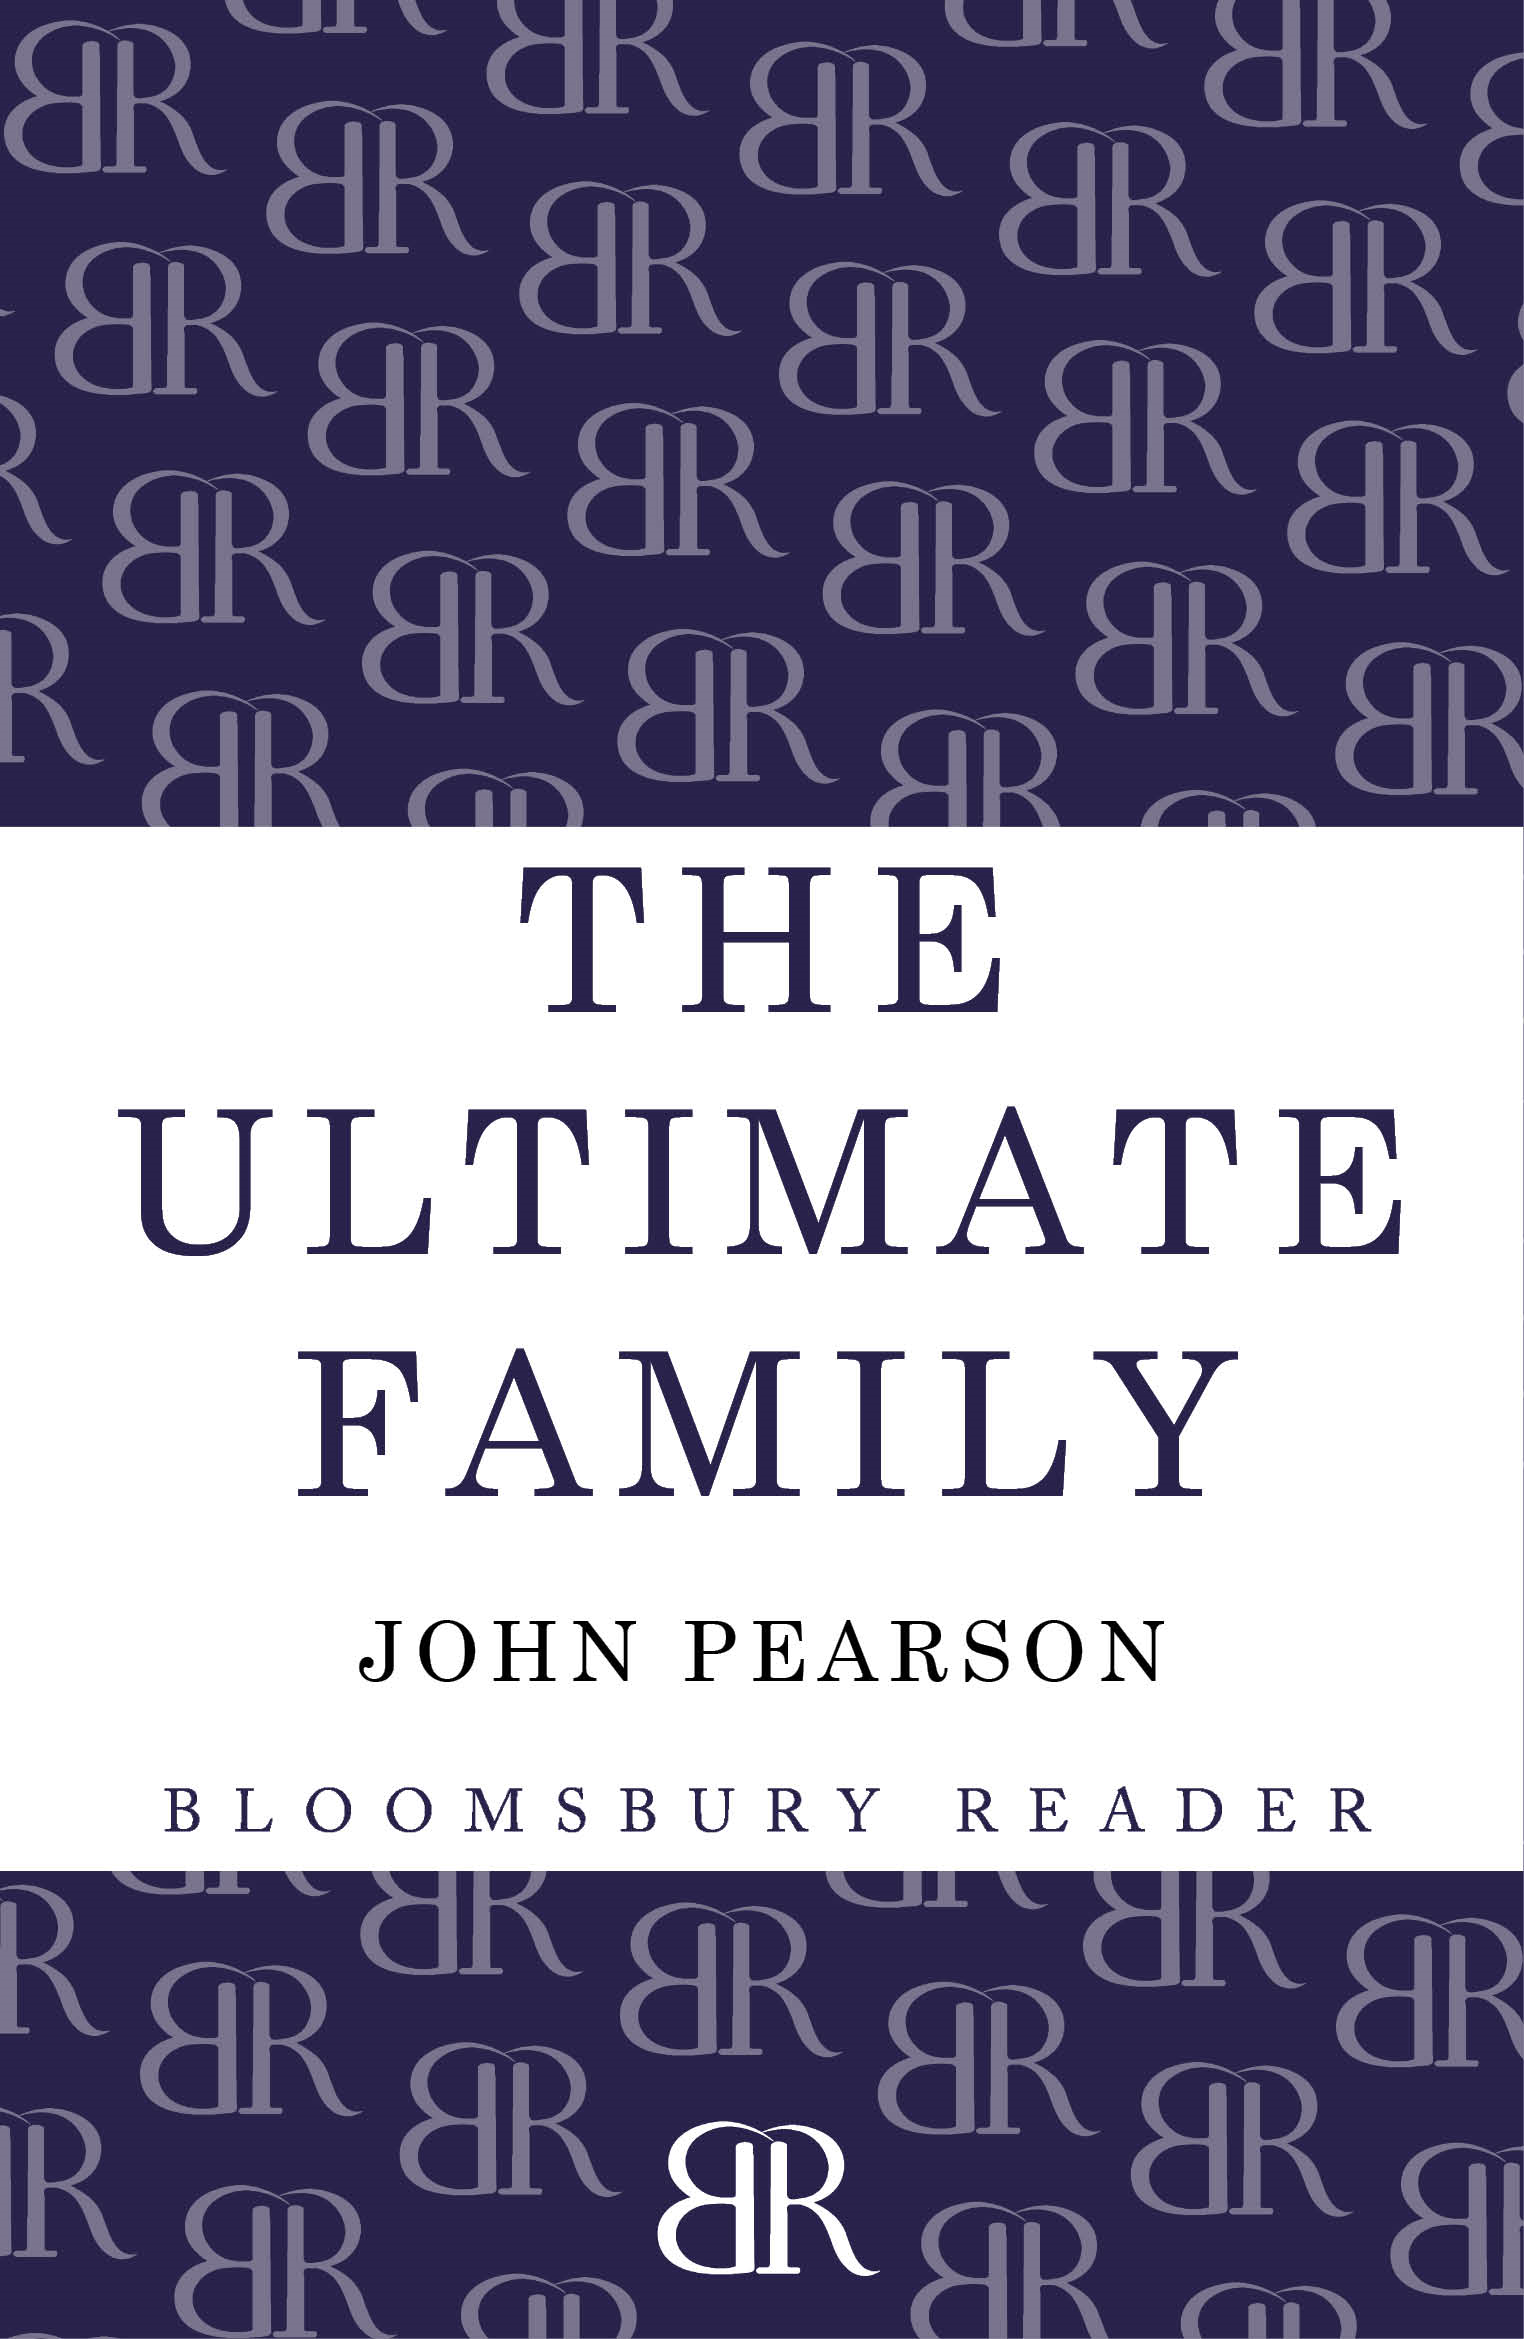 The Ultimate Family: The Making of the Royal House of Windsor By: John Pearson